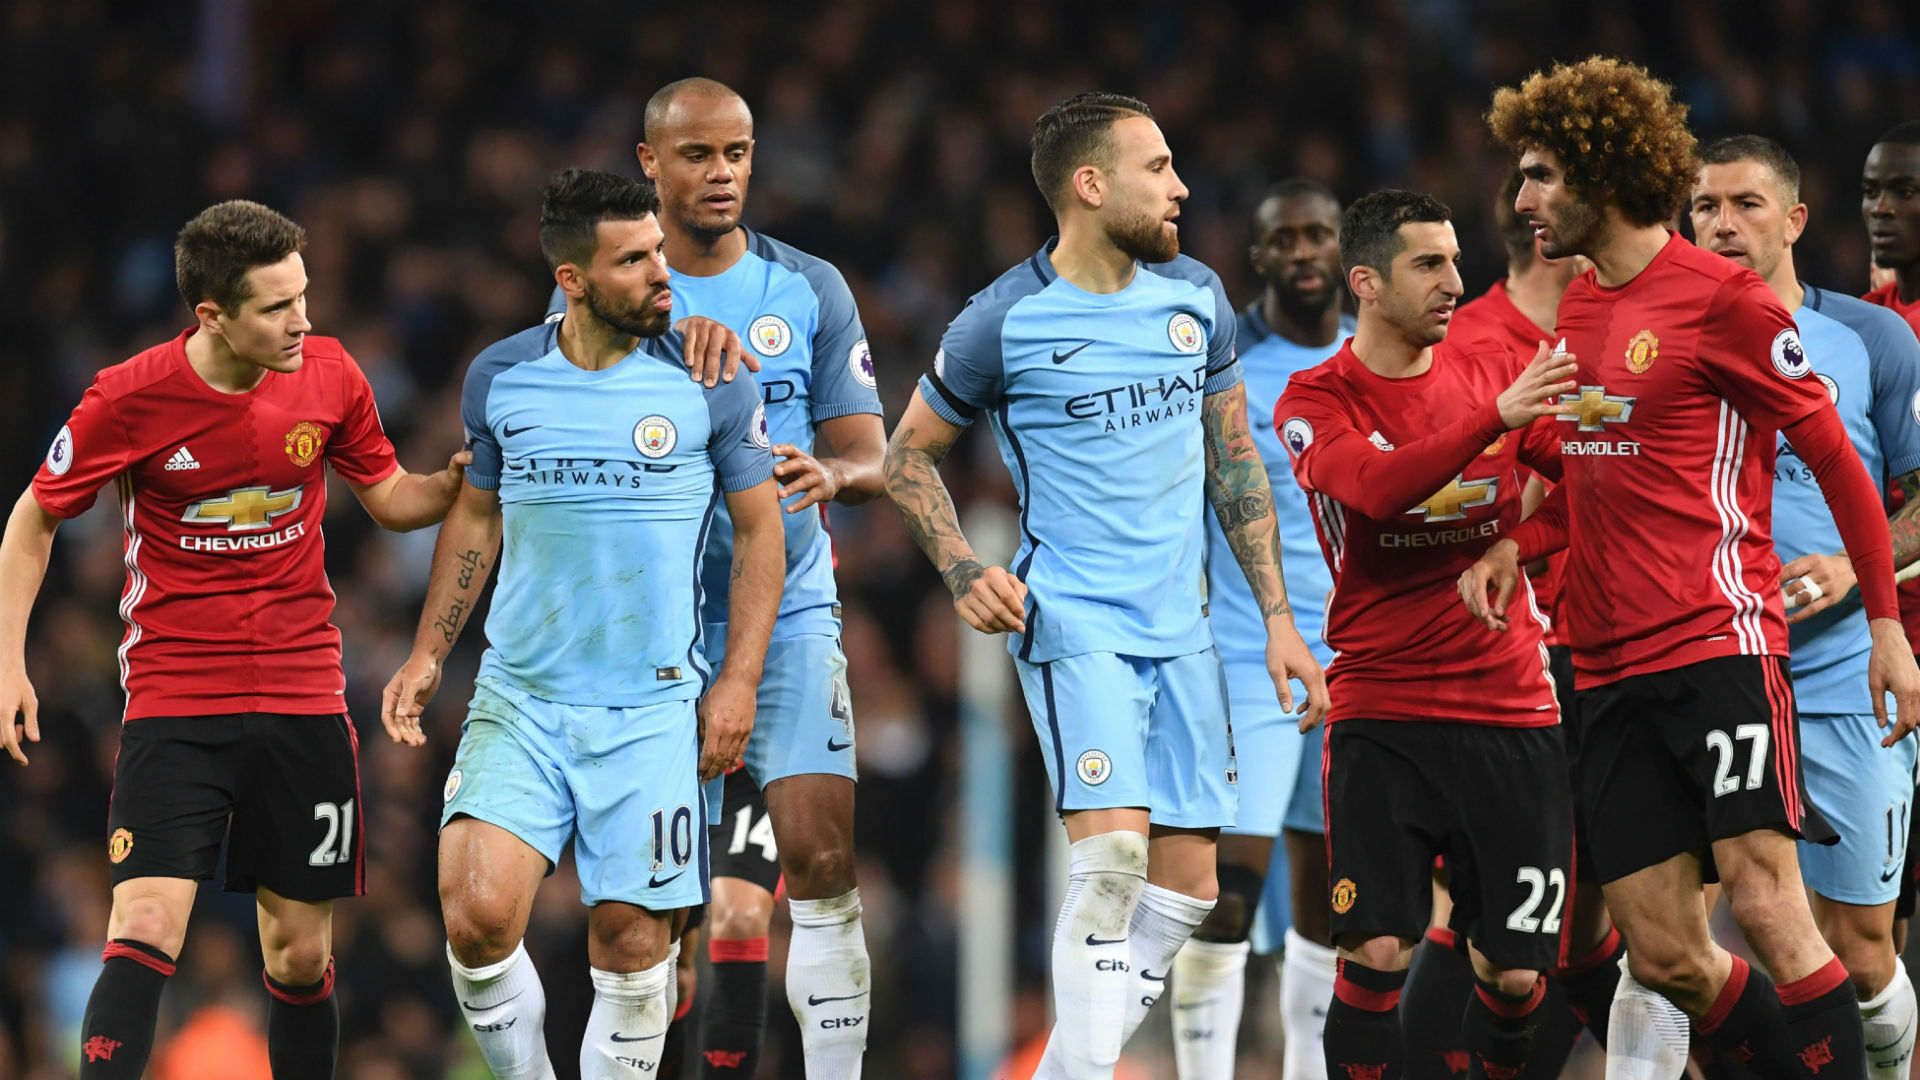 man city vs man united - photo #35